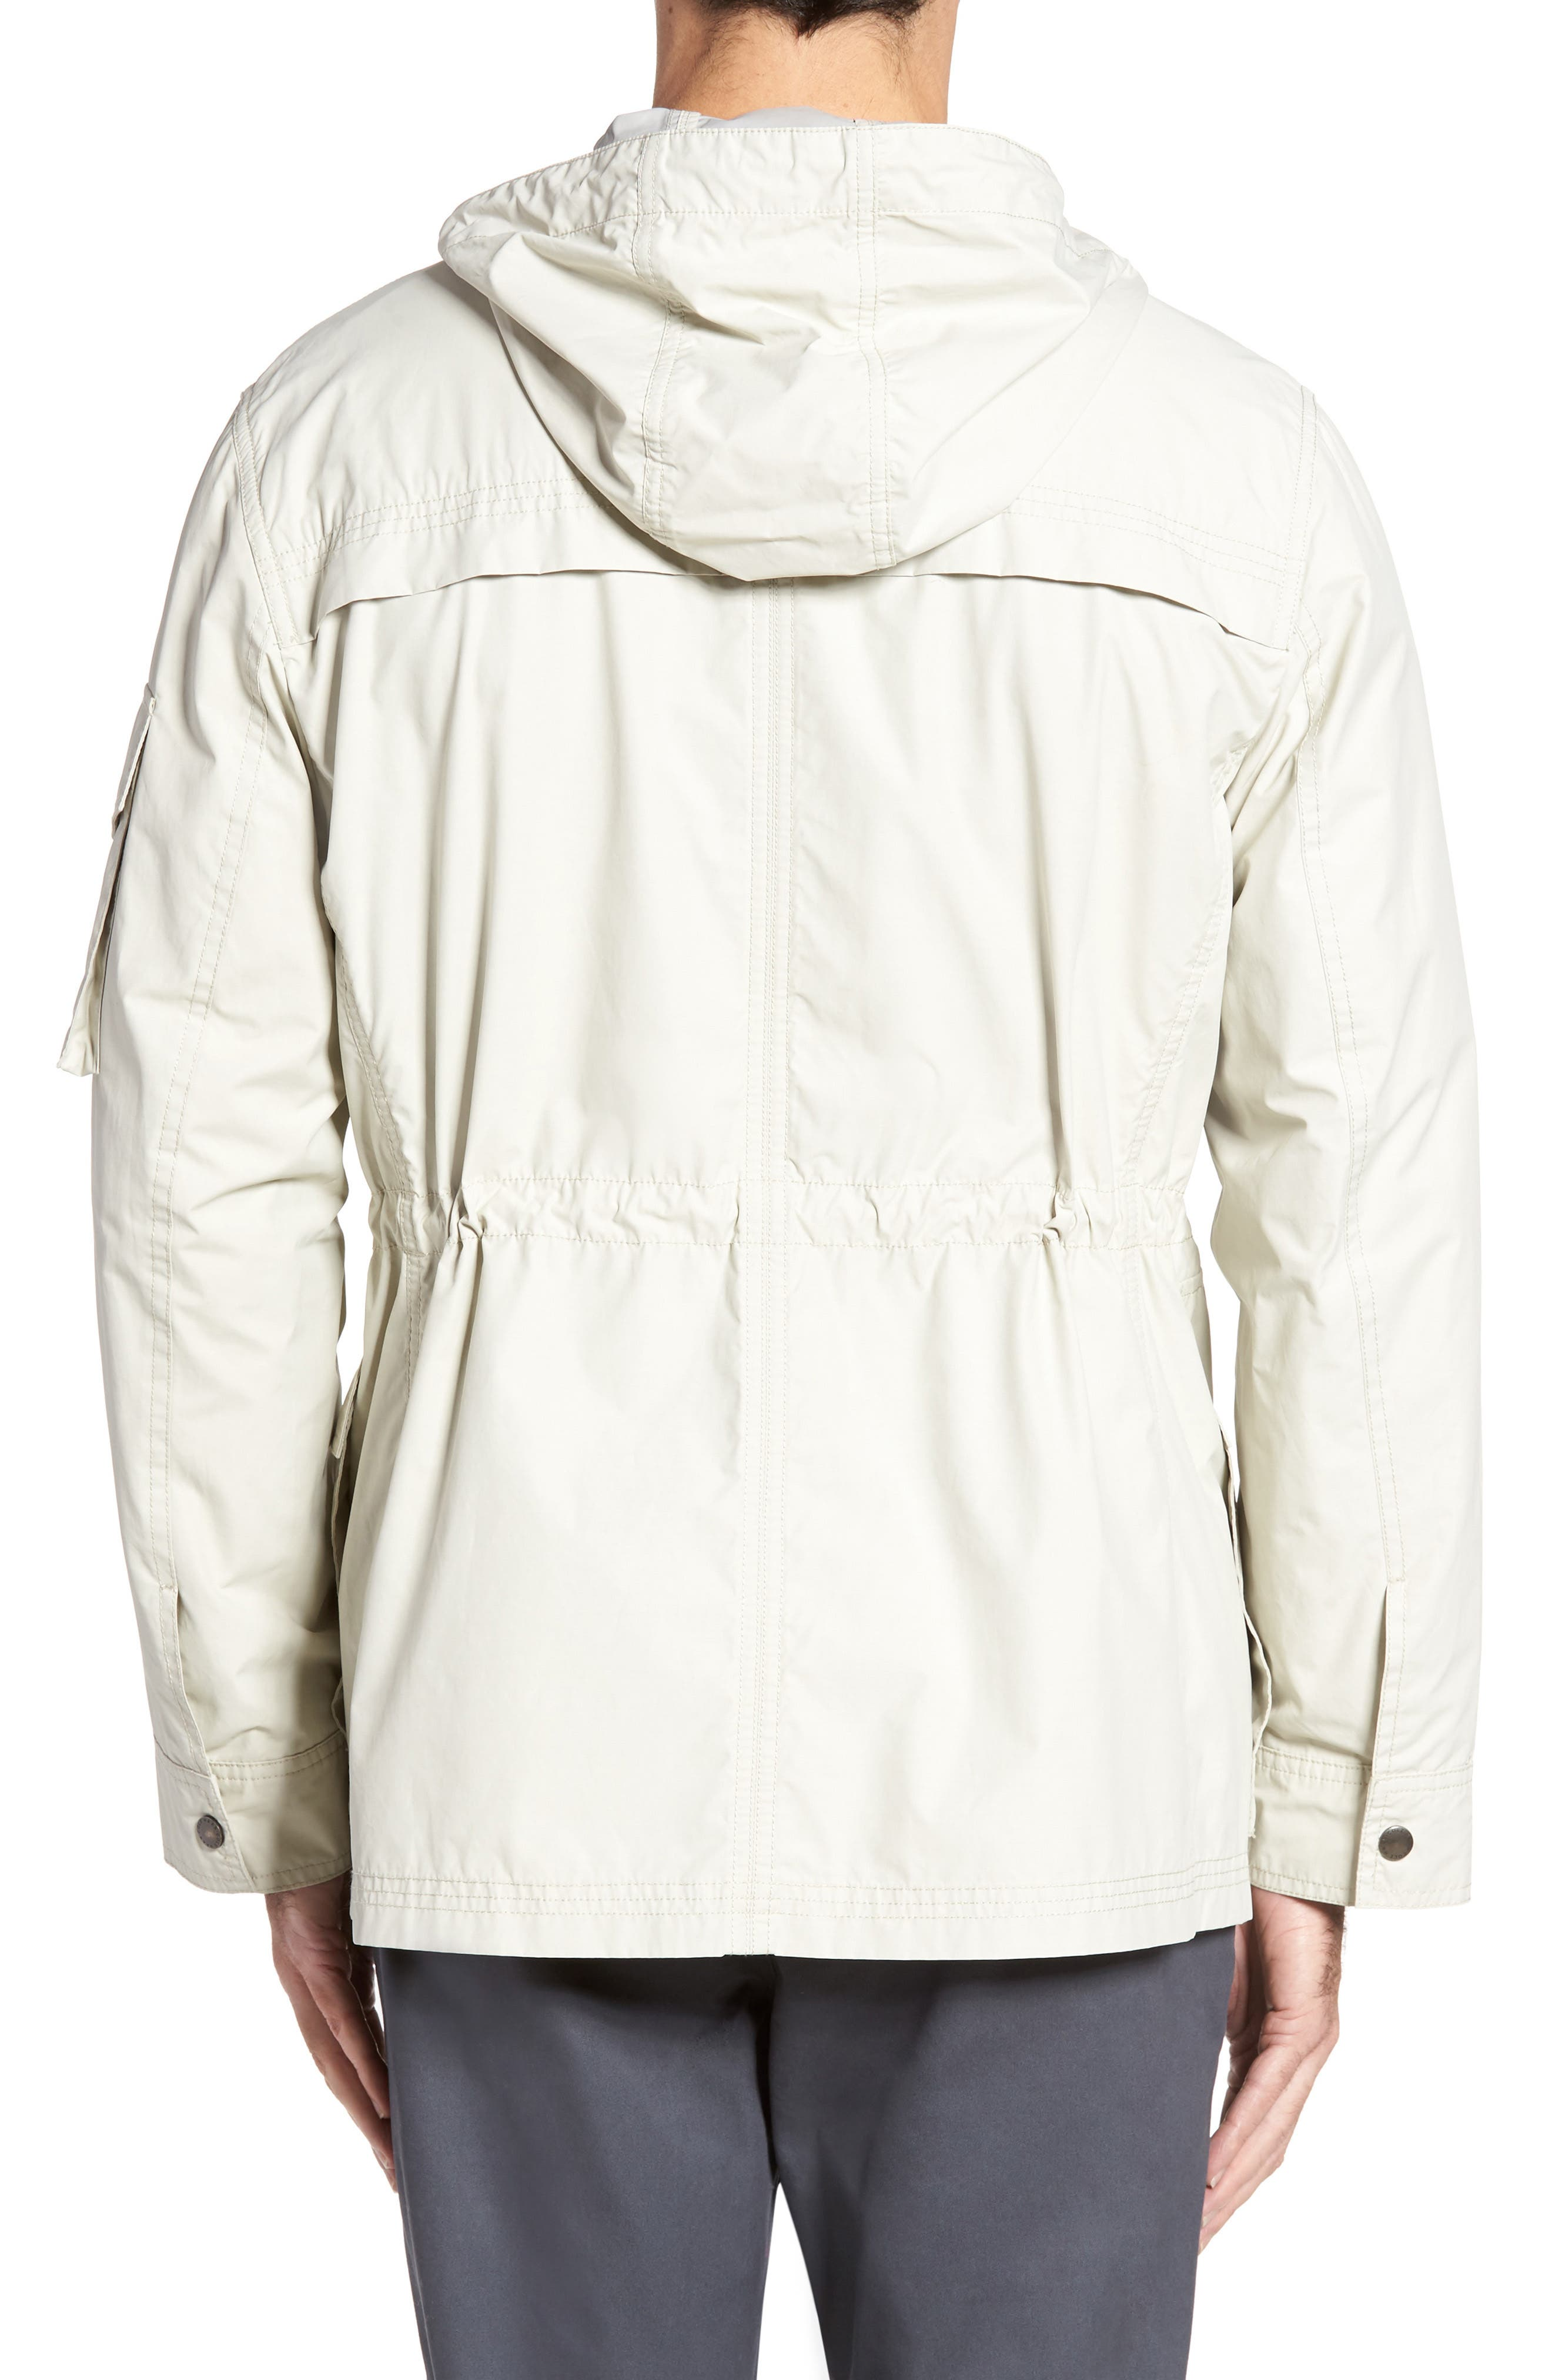 COLE HAAN,                             Water Repellent Hooded Jacket,                             Alternate thumbnail 2, color,                             STONE